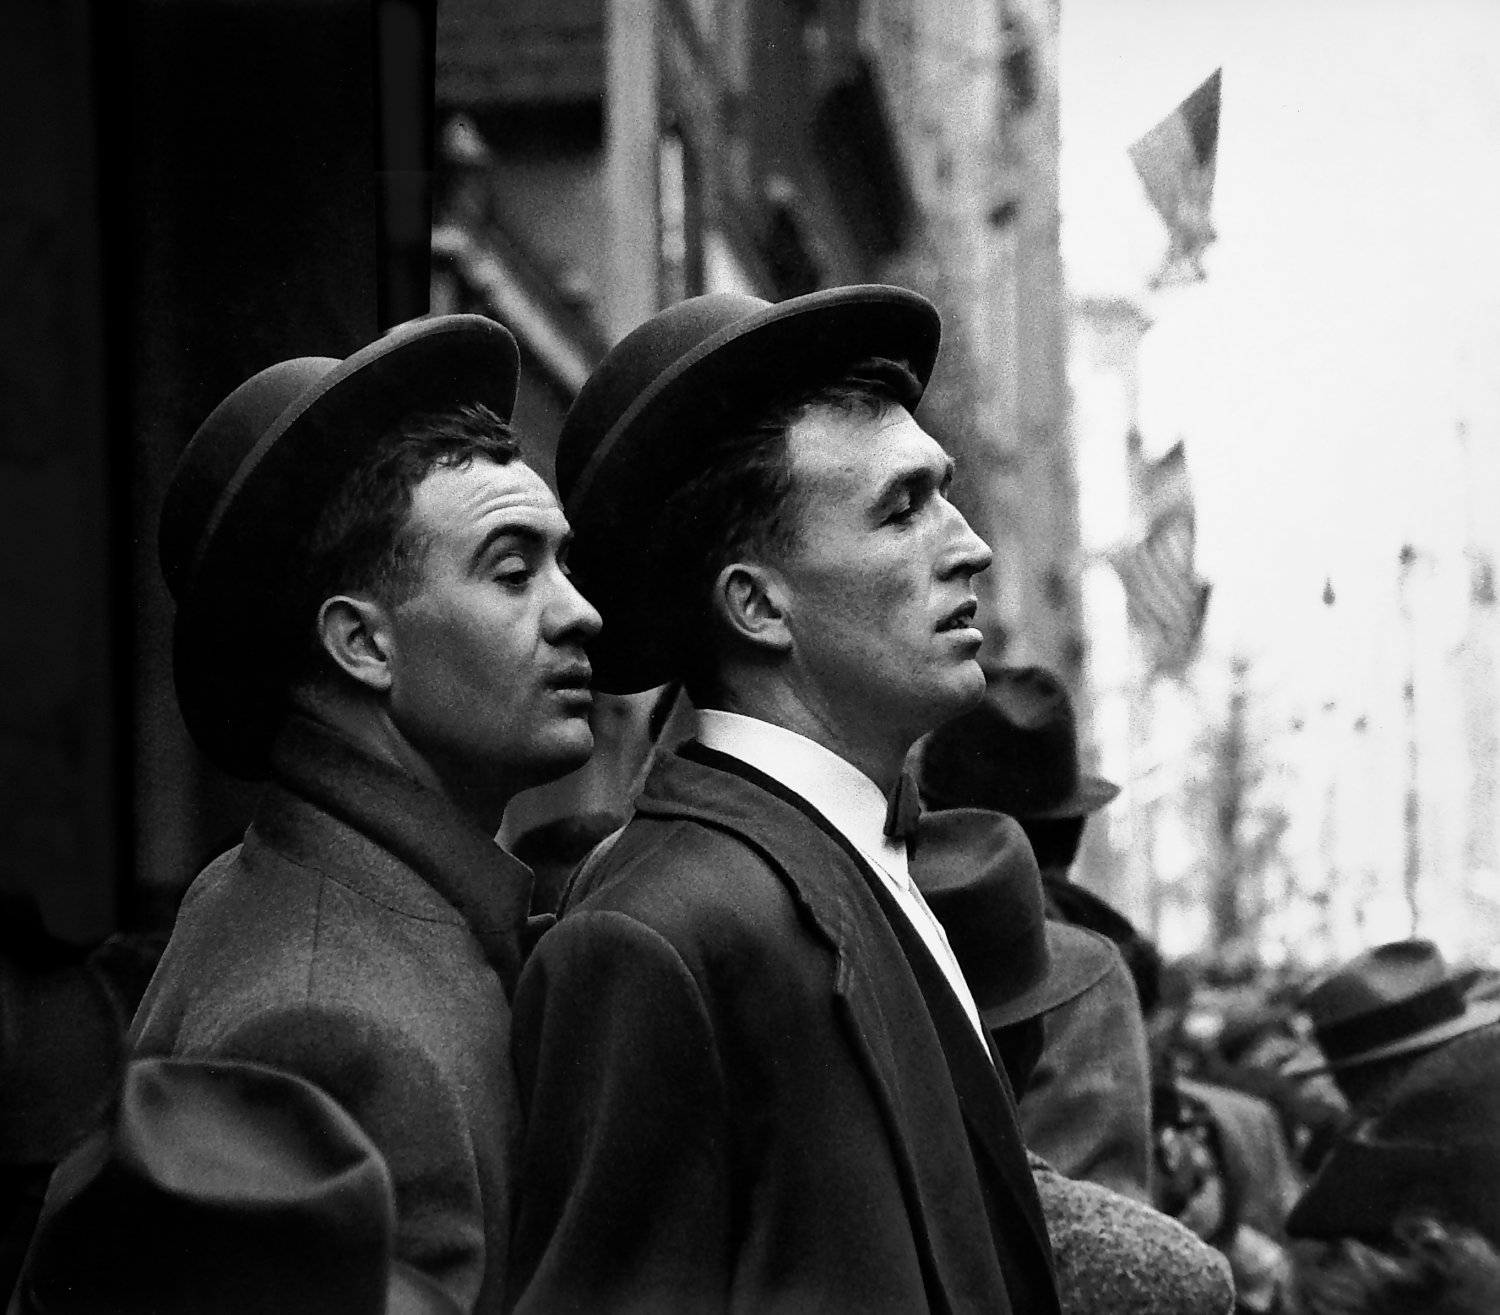 - Two young Irishmen watch the Saint Patrick's Day parade in New York City. - Photojournalism - Life Magazine - Black and white photography - Canon rangefinder and SLR cameras - - art  - photography - by Tony Karp